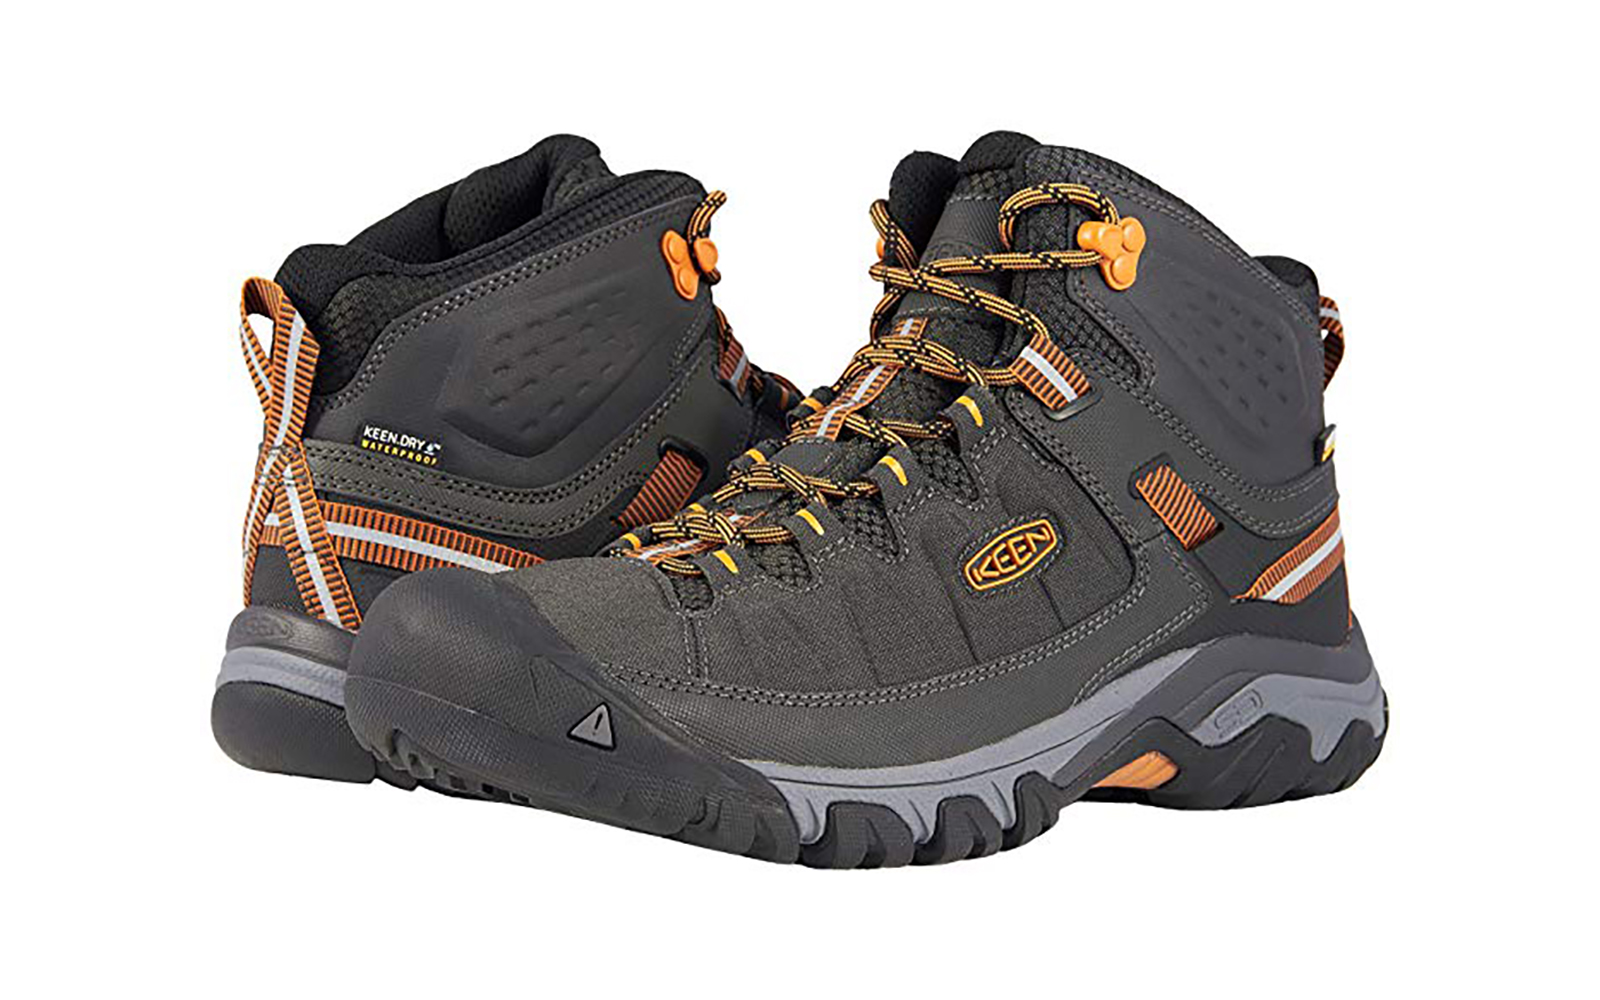 4323d01835d63 The 14 Best Hiking Shoes and Boots, According to Reviews | Travel + ...